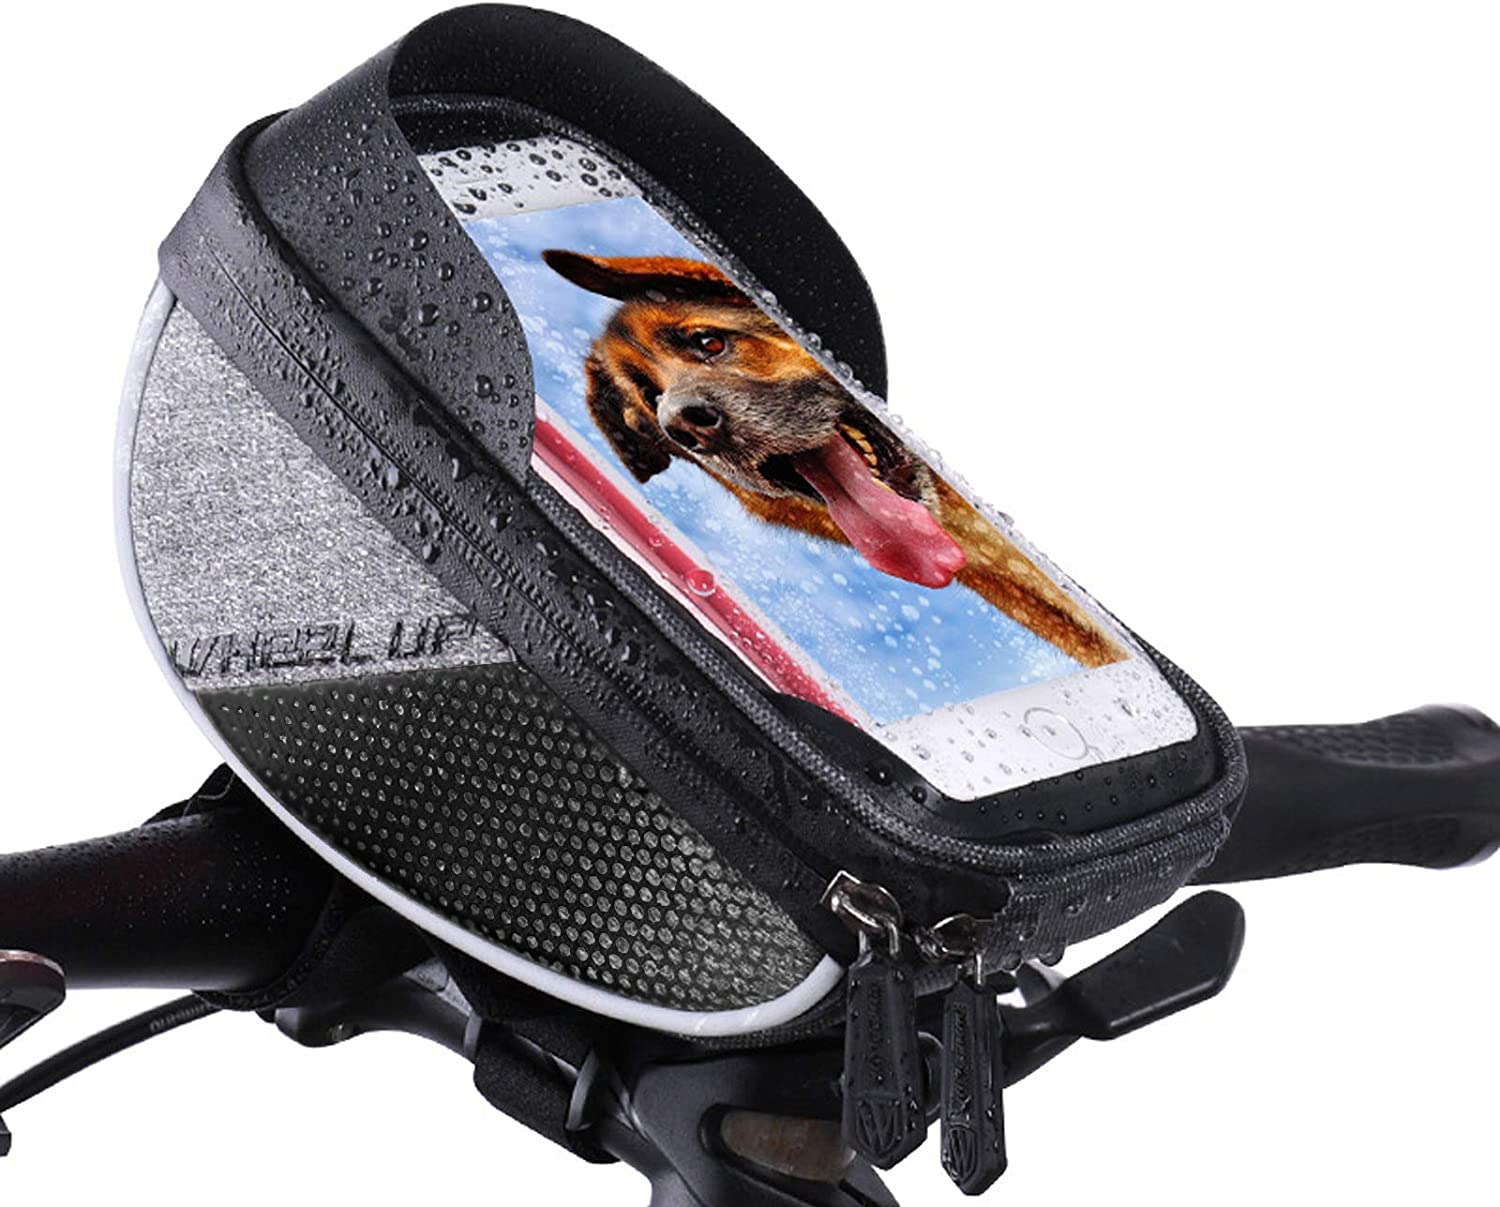 CFTGET Bike Phone All items in the store Mount Bags Waterproof Tube Han Frame Top Front Limited price